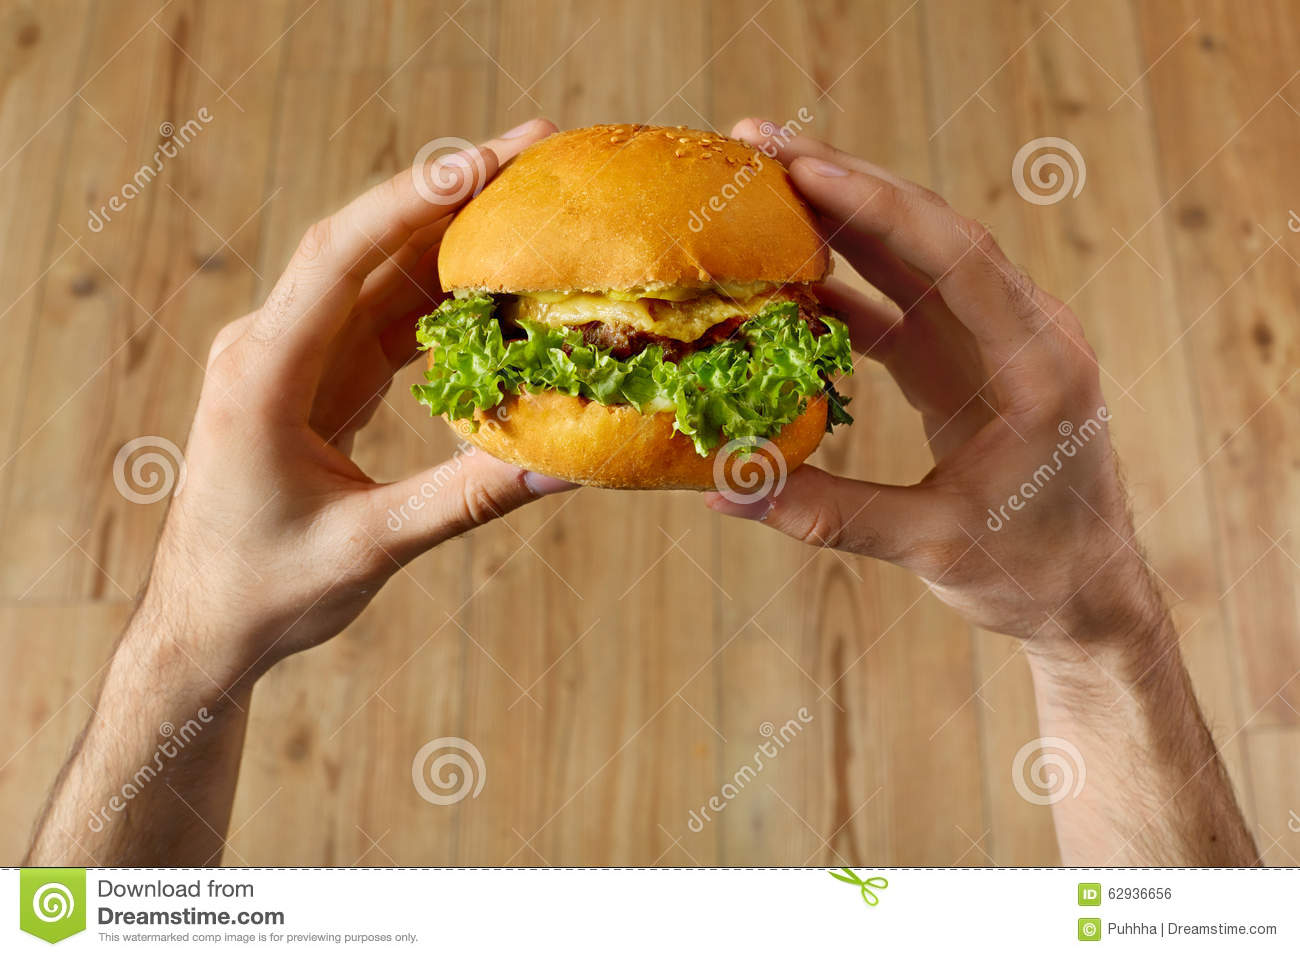 Eating fast food hands holding hamburger point of view for Cuisine you eat with your hands